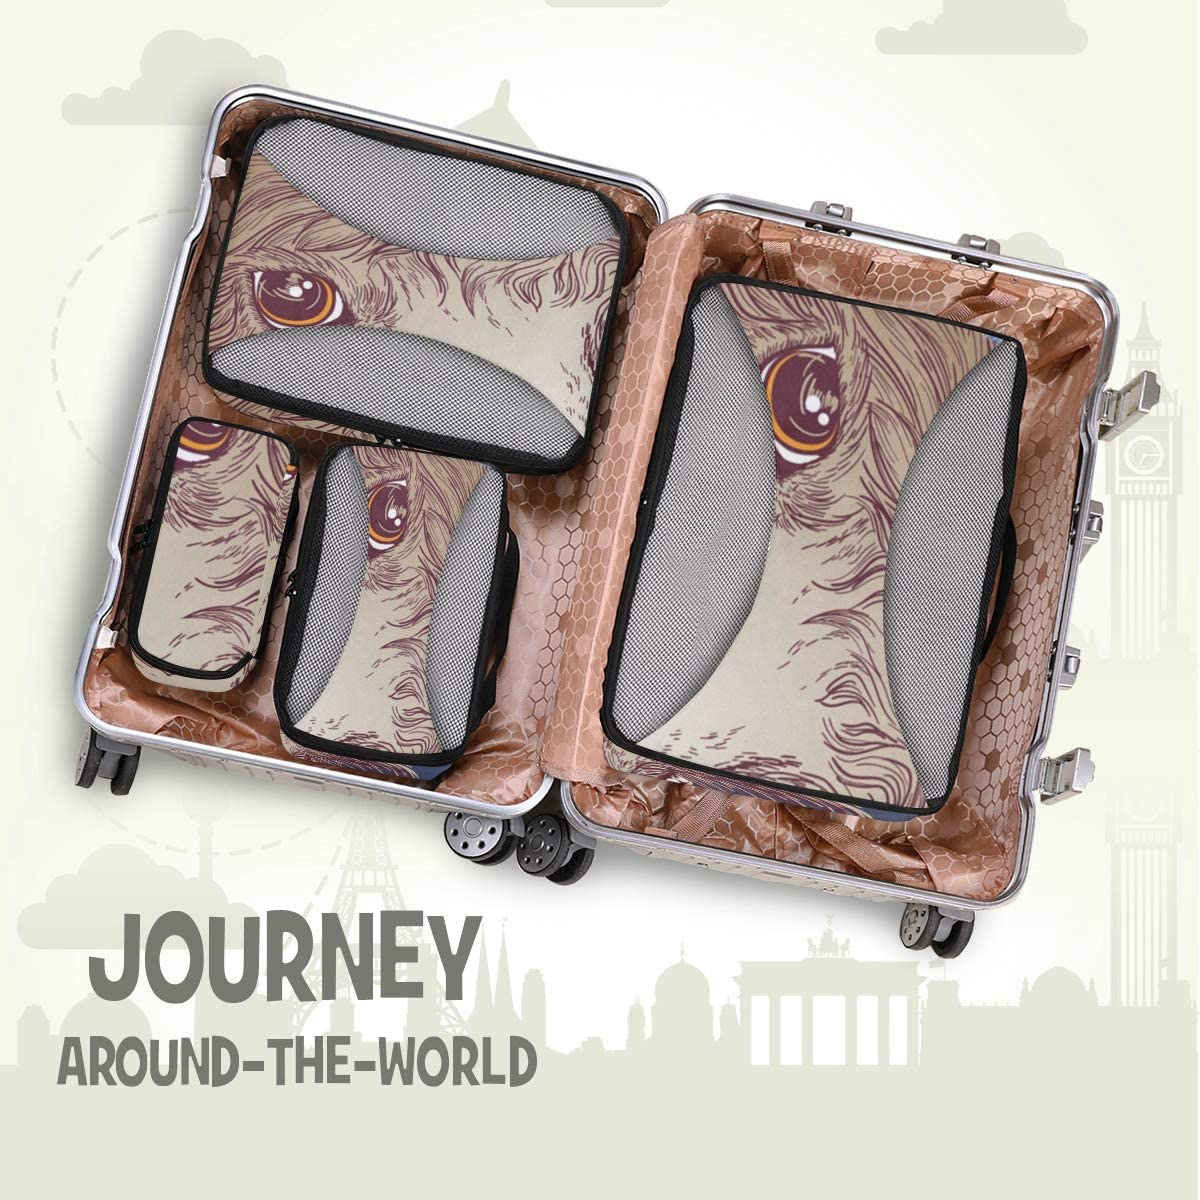 4 Set Packing Cubes Travel Luggage Packing Organizers Cheerful Alpaca